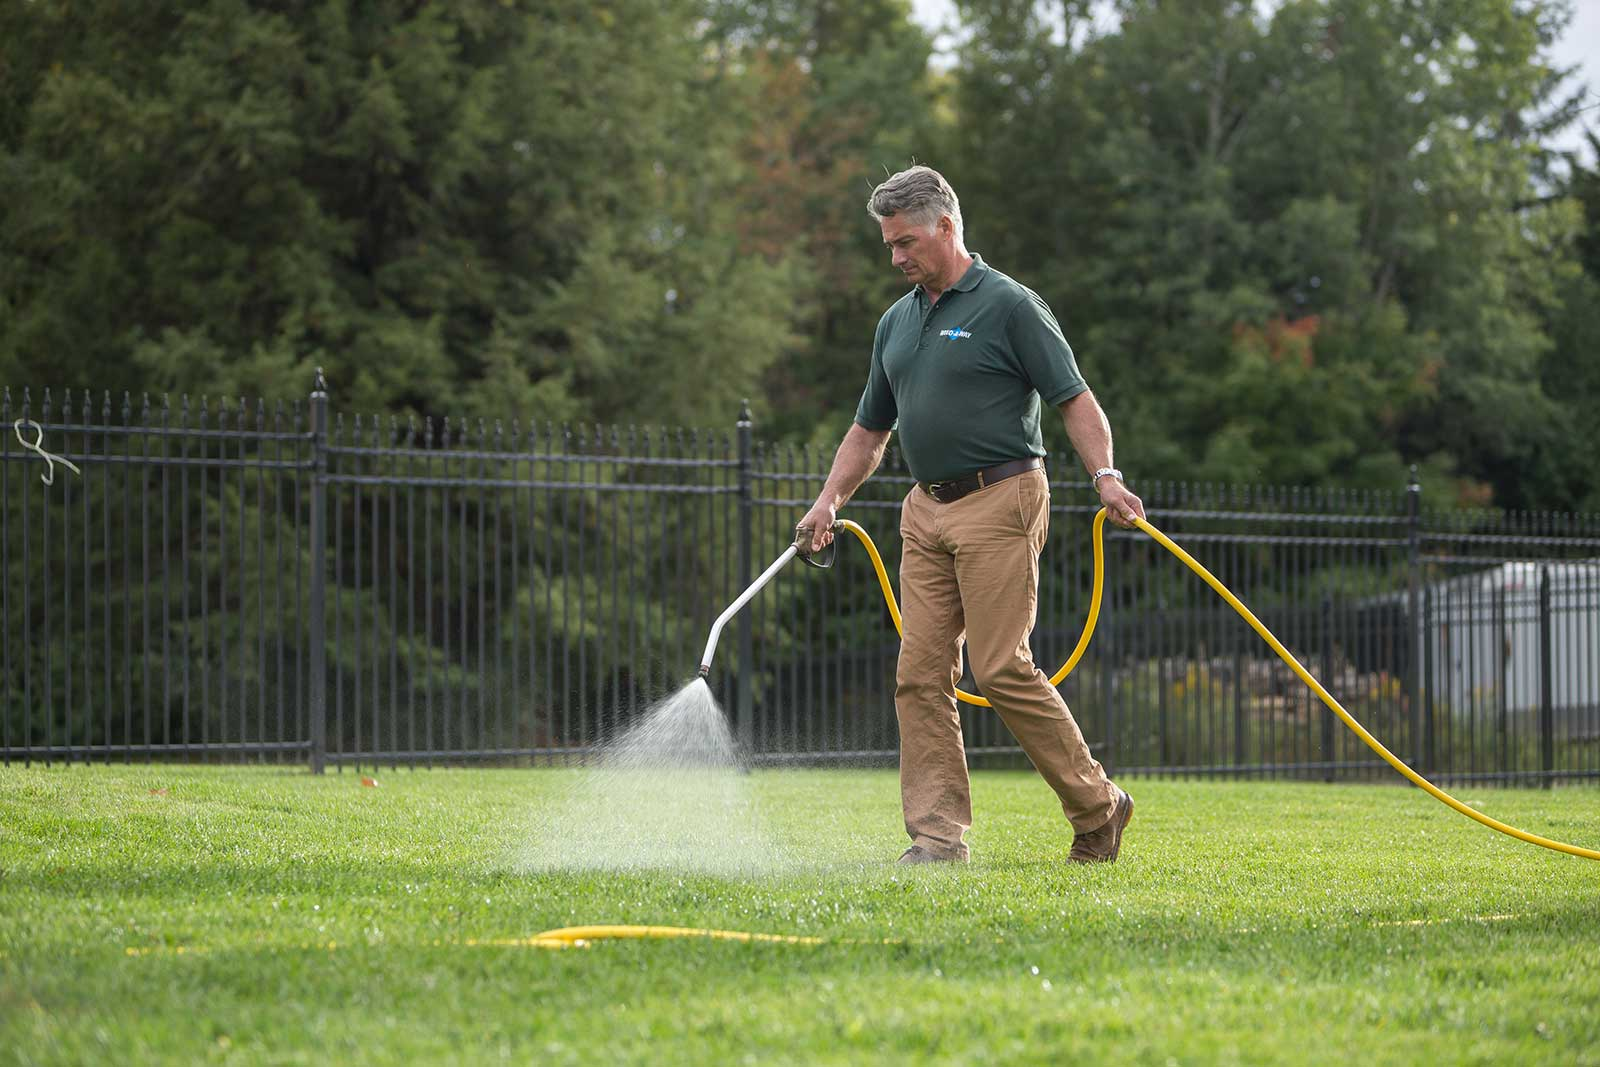 kevin mahoney spraying lawn with hose